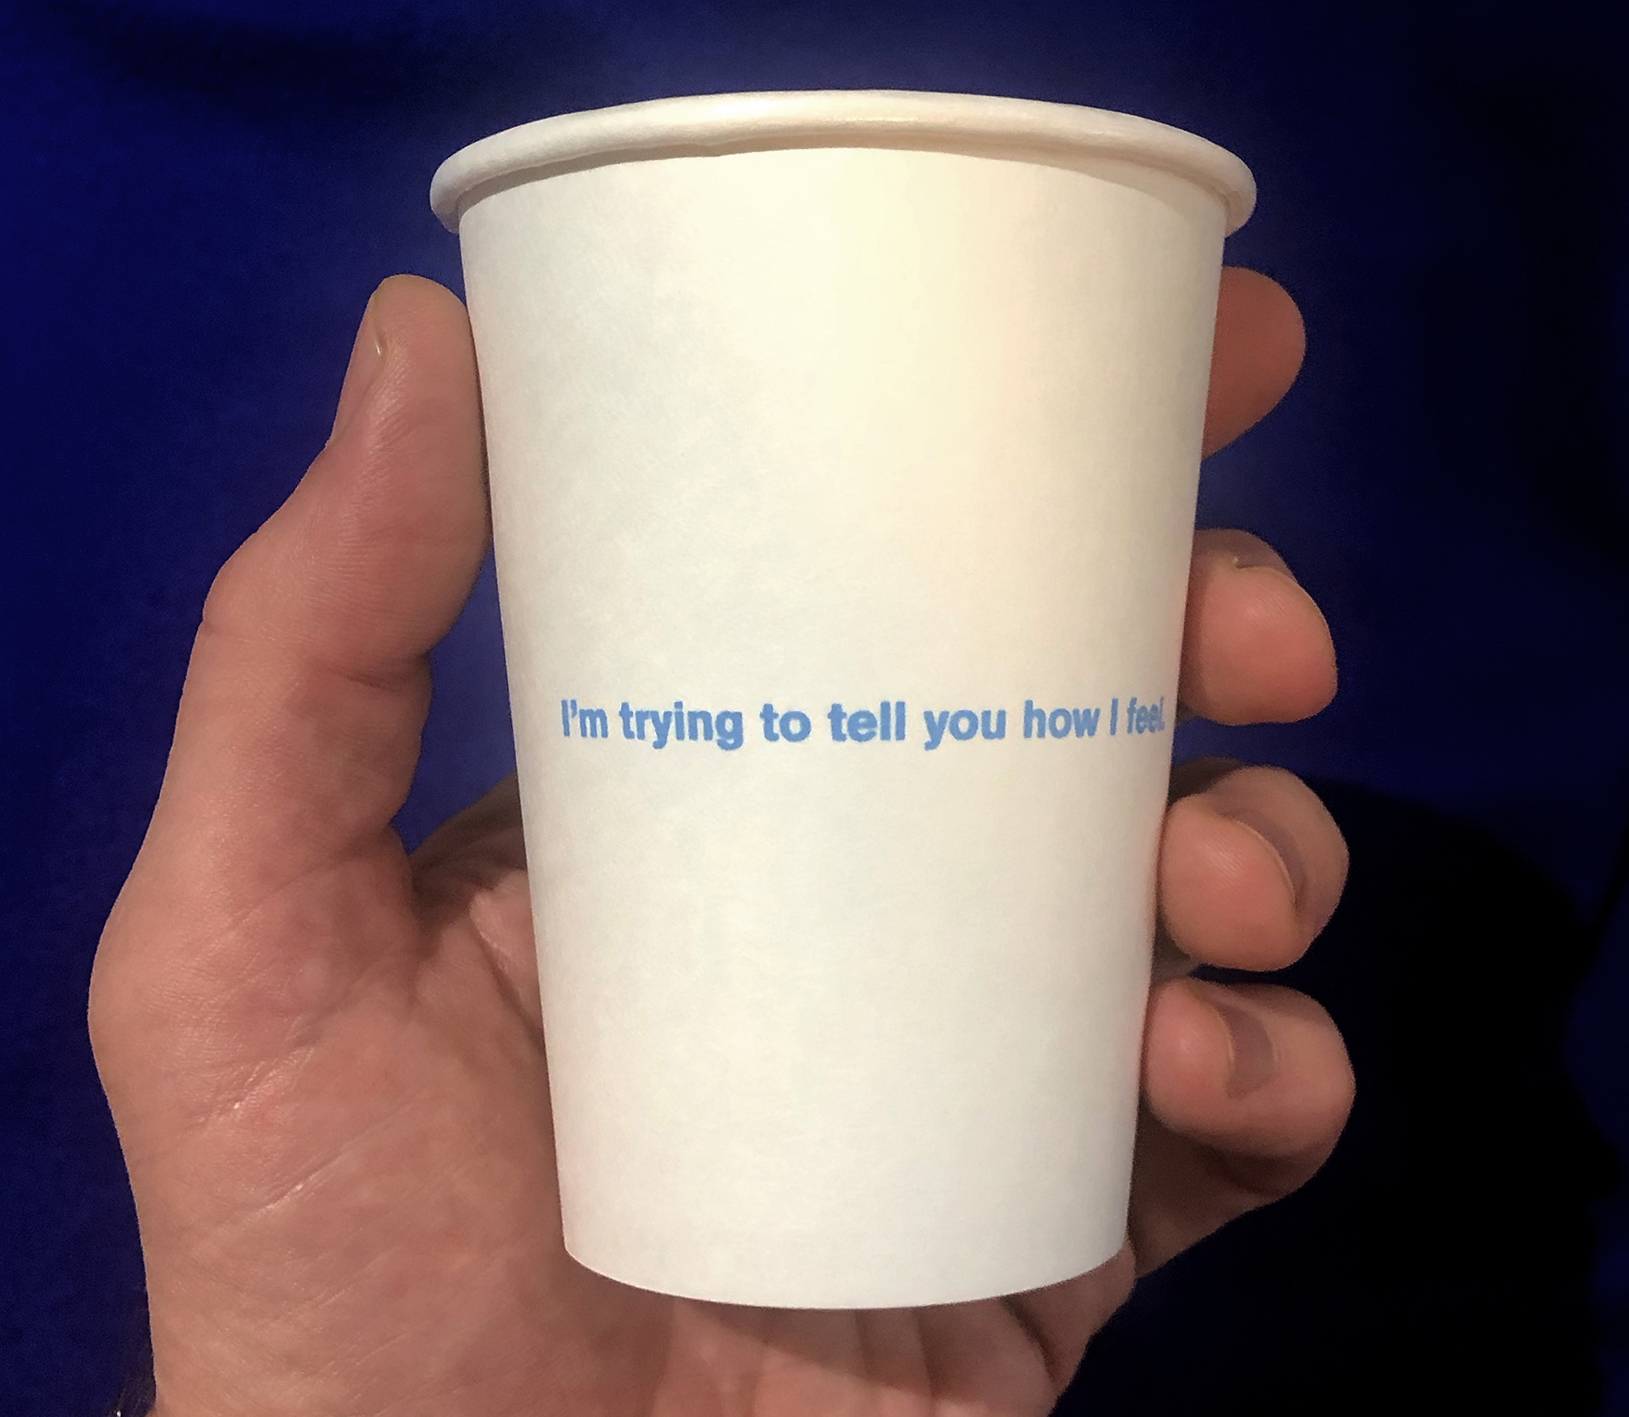 Aaron Krach   Indestructive Artifact #29 (Effort),  2019 Blue ink on paper cups Each cup: 4 x 3 x 3.5 inches Commercially printed; published by the artist Edition: 10 + 1AP (each includes 100 cups) Courtesy of the artist